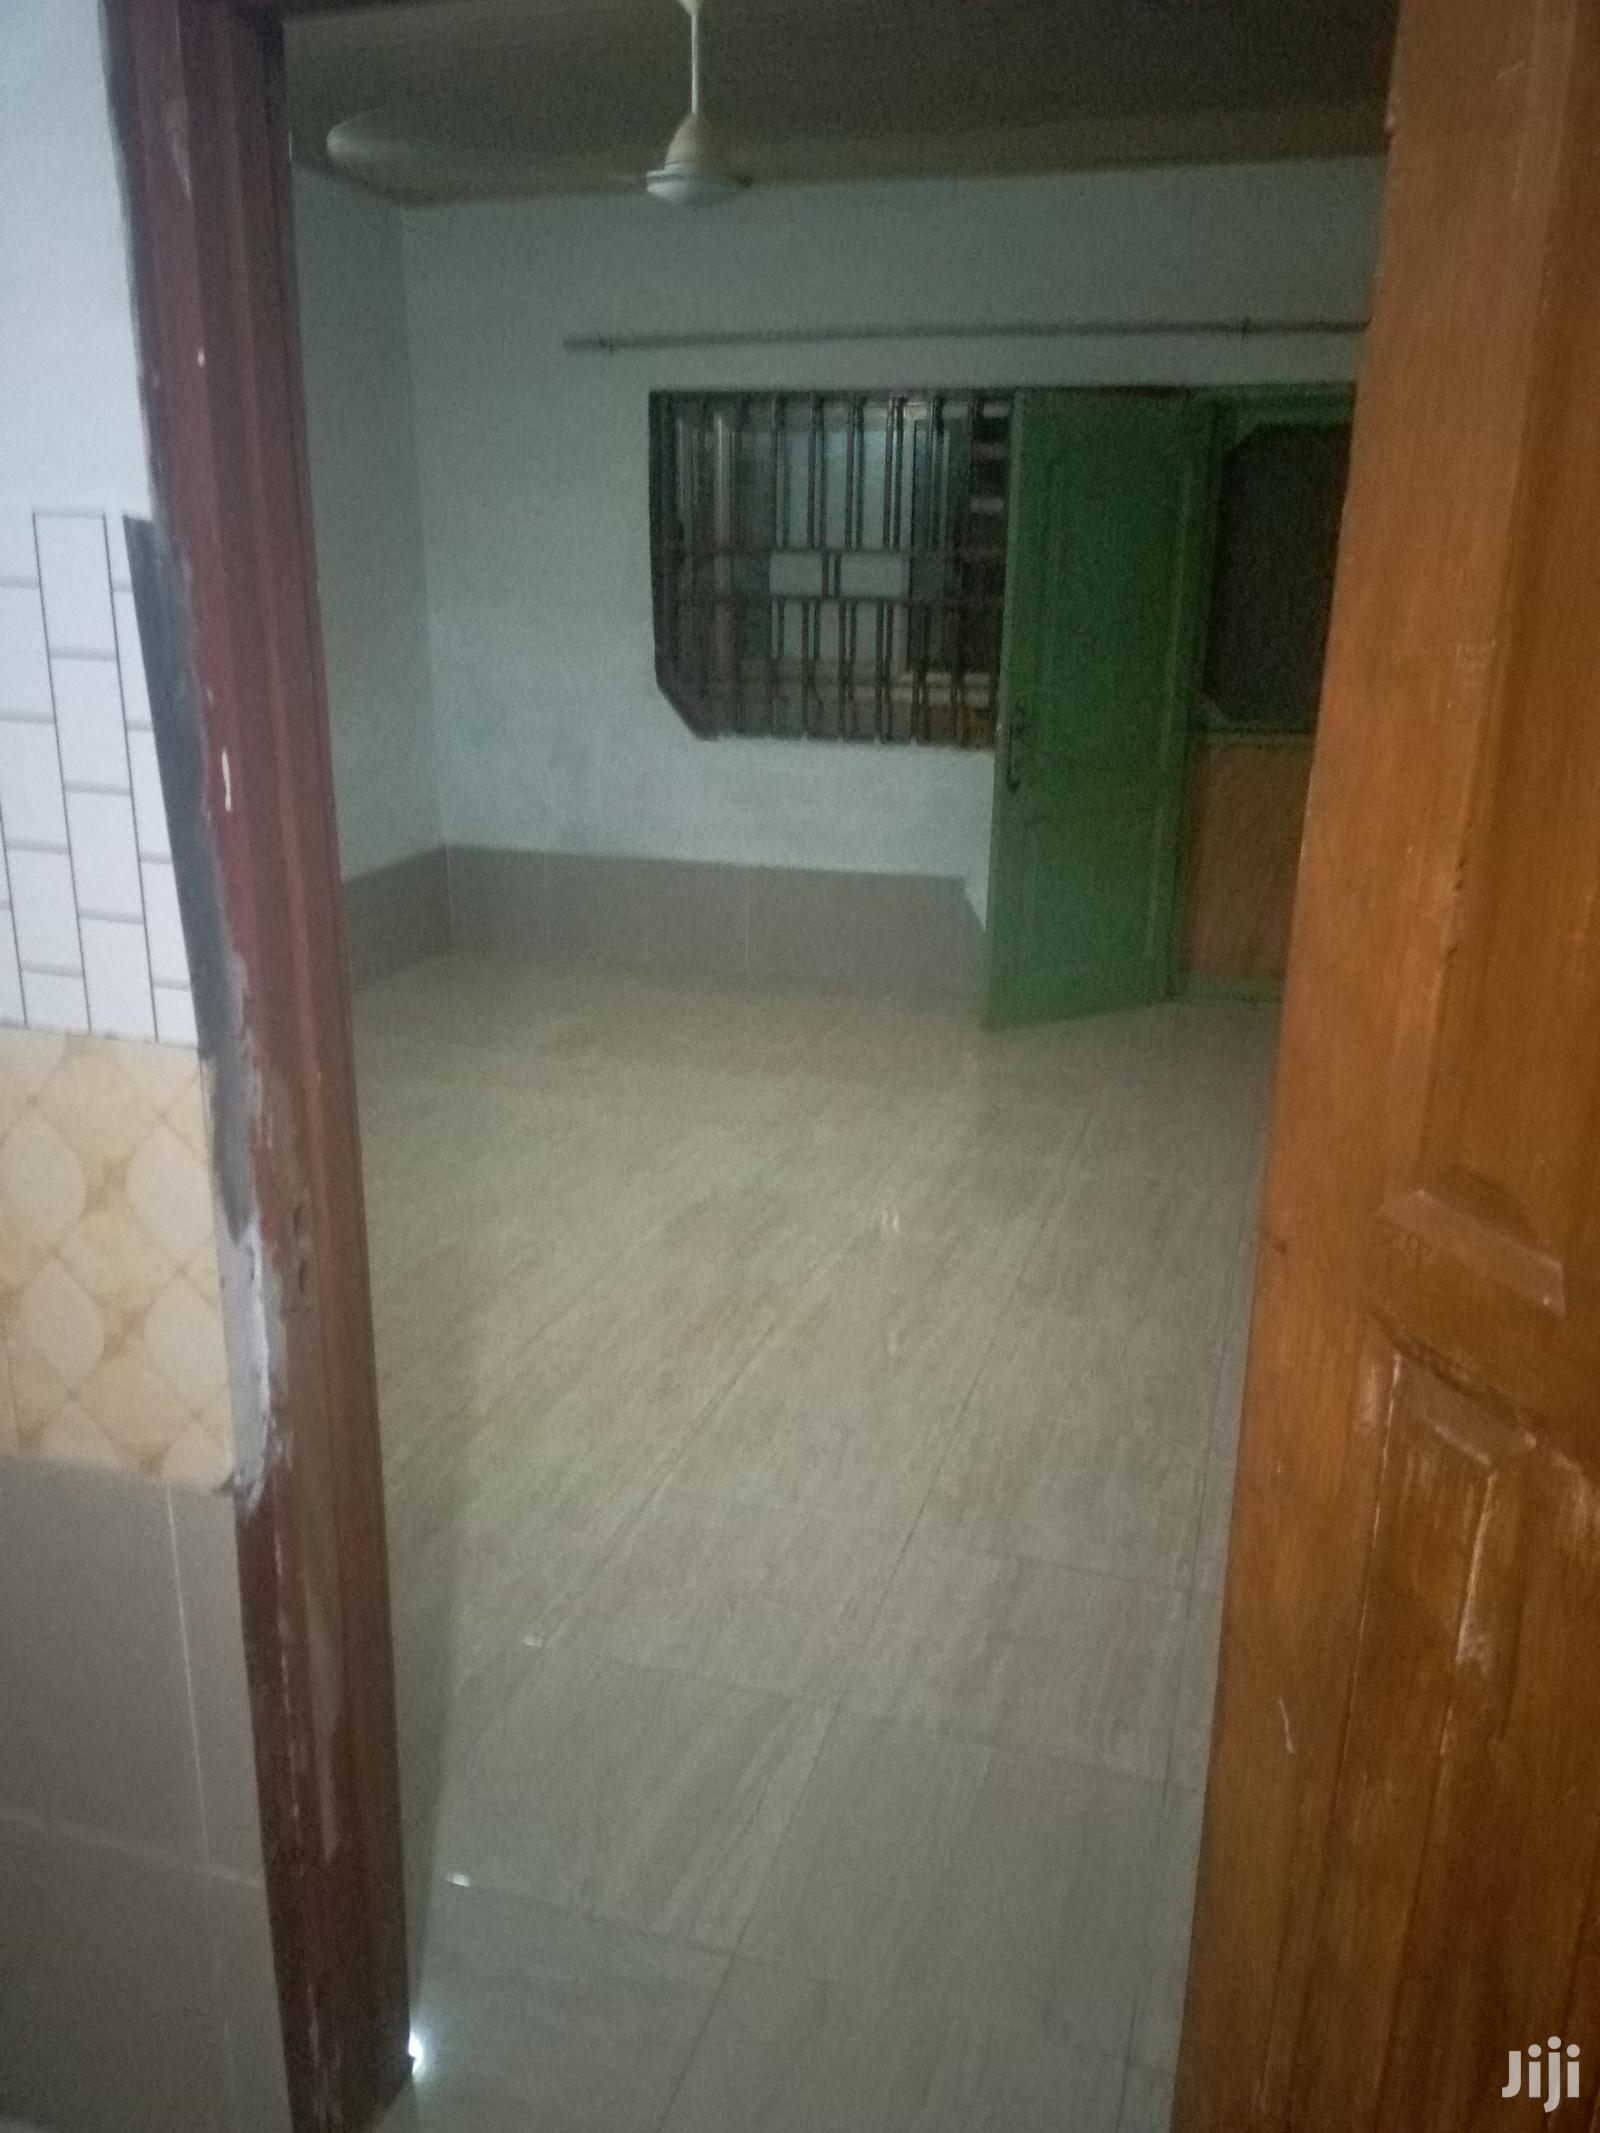 Executive Single Room S/C at Tse-Addo | Houses & Apartments For Rent for sale in Burma Camp, Greater Accra, Ghana